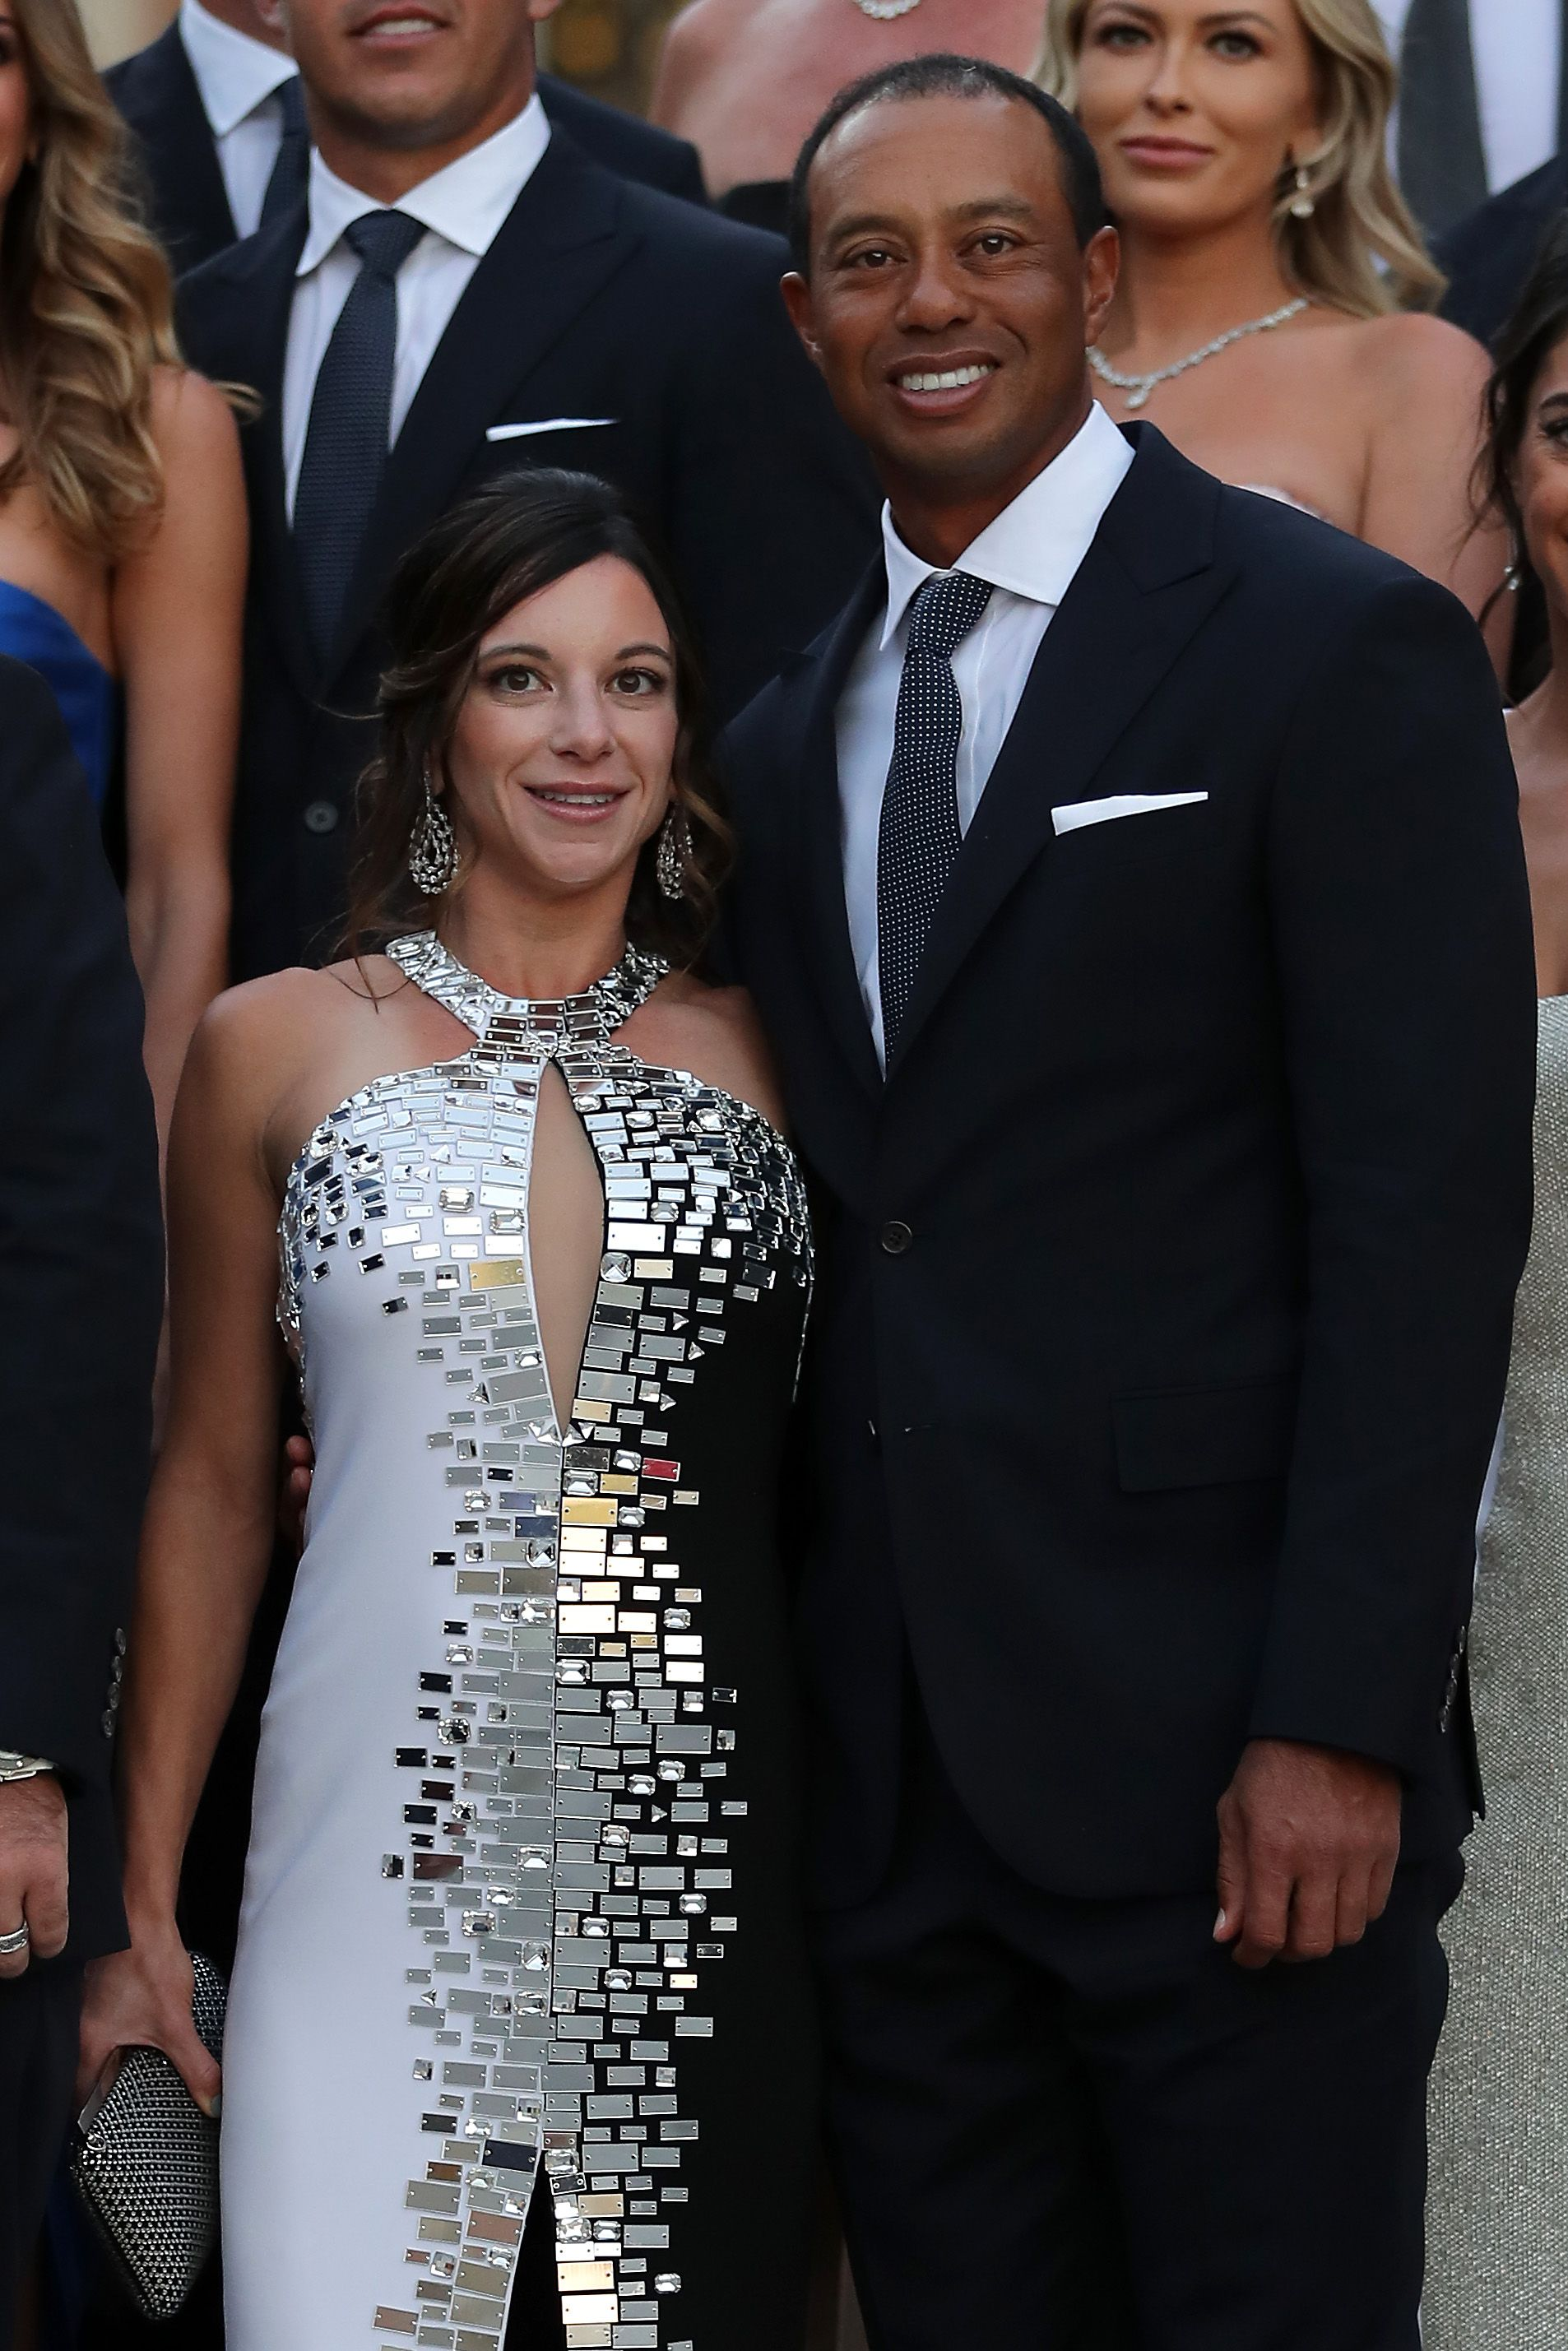 Tiger Woods poses with girlfriend Erica Herman before the Ryder Cup gala dinner at the Palace of Versailles ahead of the 2018 Ryder Cup on September 26, 2018 in Versailles, France. | Source: Getty Images